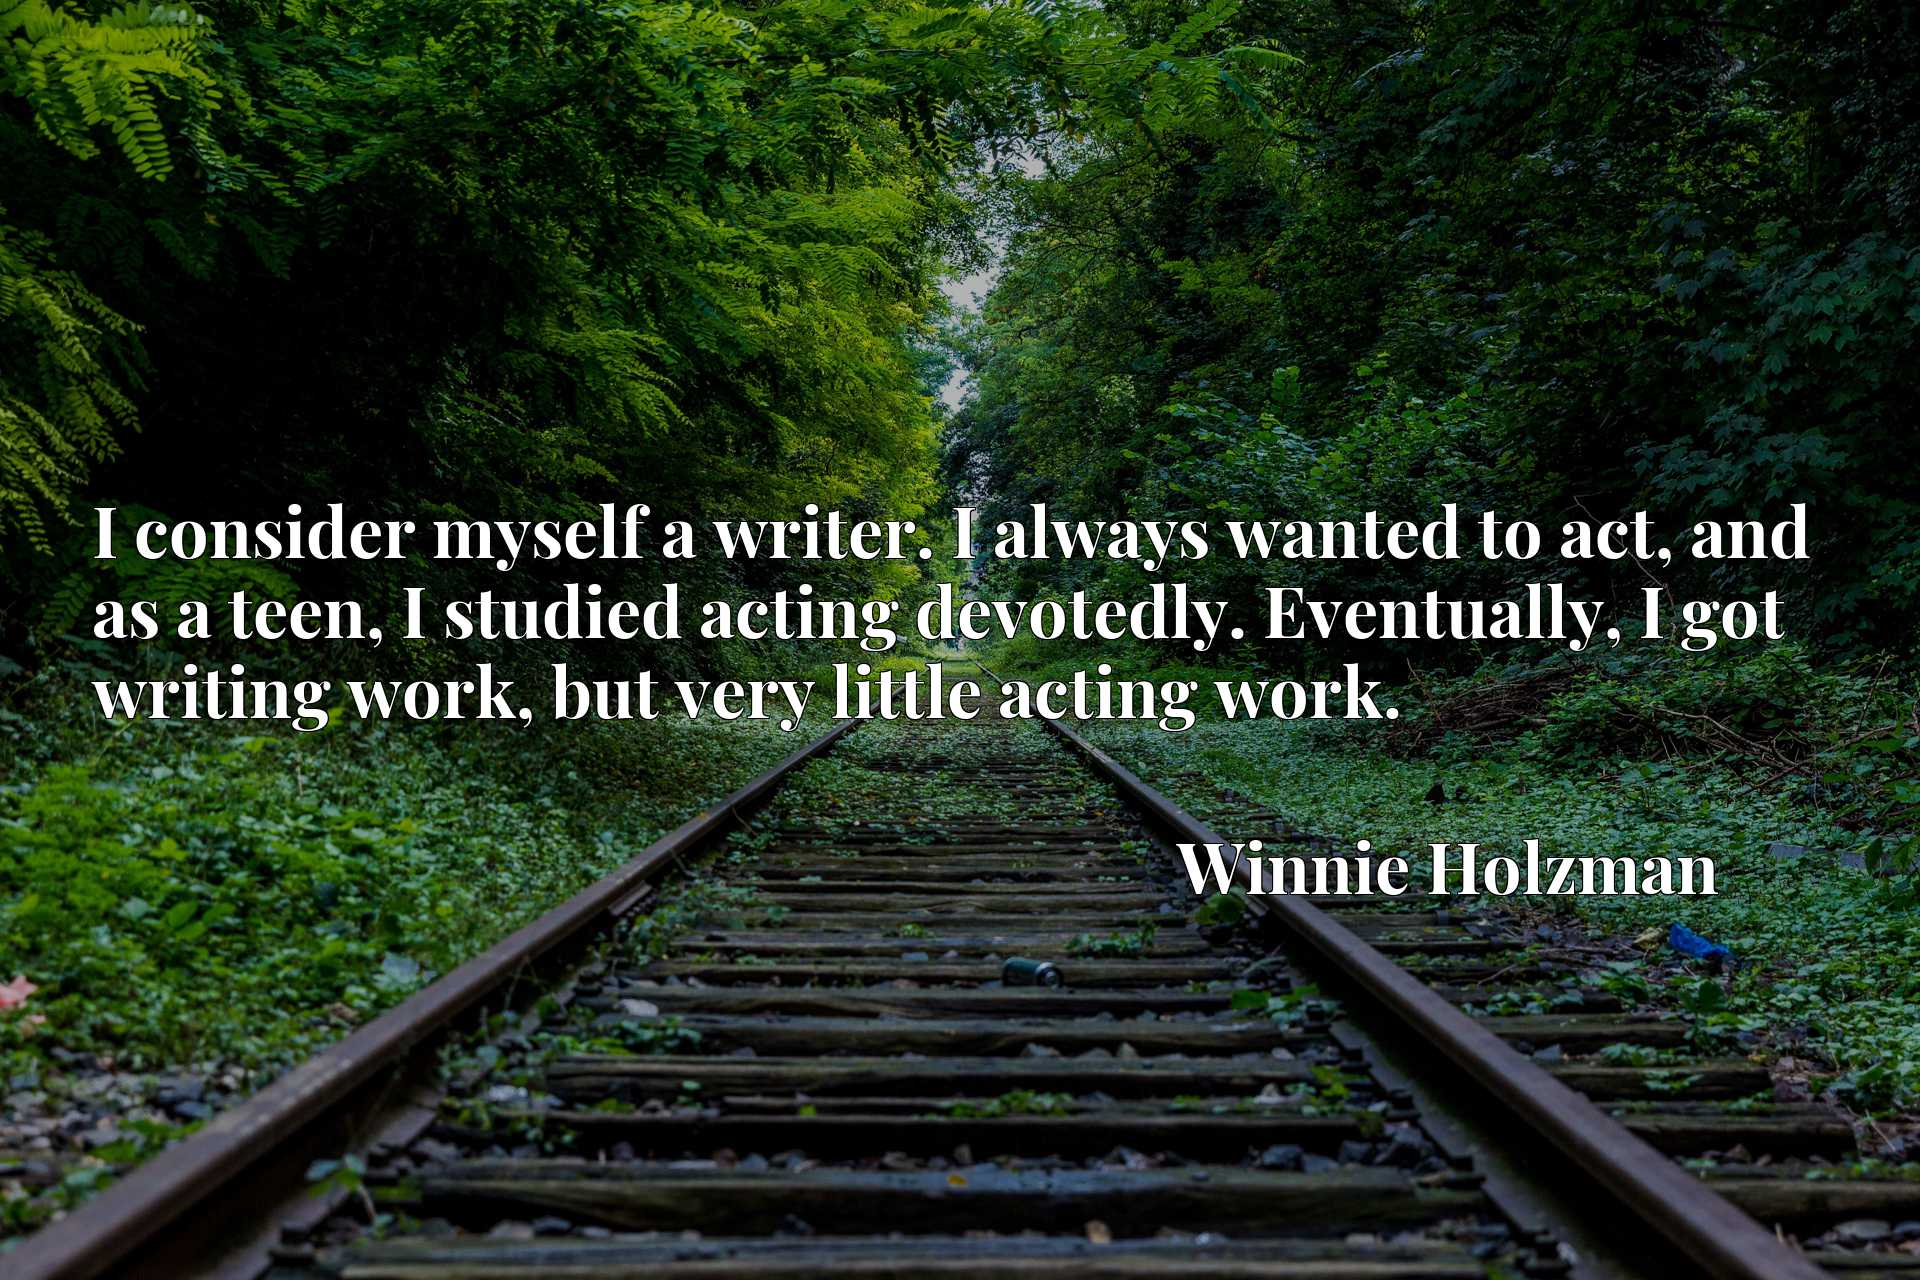 I consider myself a writer. I always wanted to act, and as a teen, I studied acting devotedly. Eventually, I got writing work, but very little acting work.